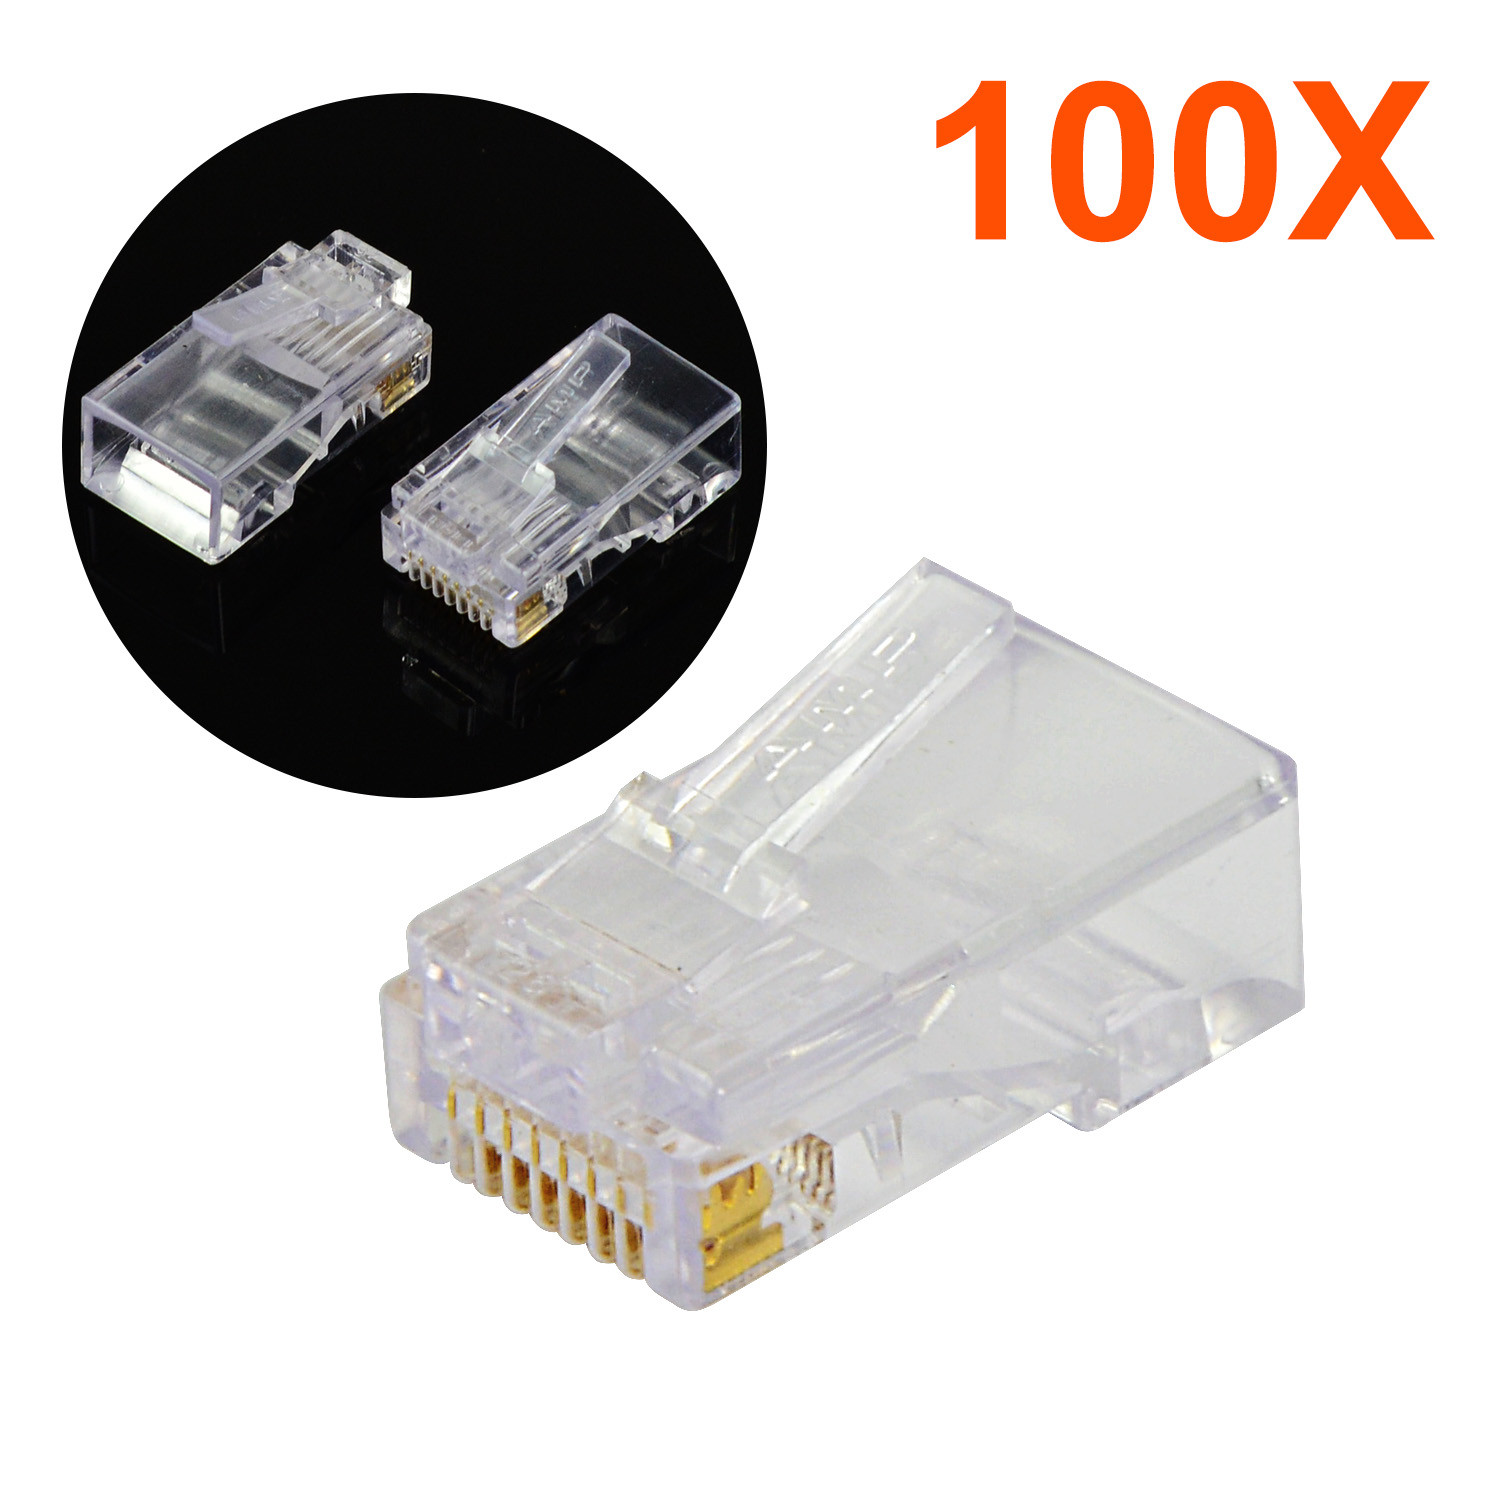 MENGS® 100pcs RJ45 Net Gold plated Network Modular Plug Cat5 CAT5e Cables Connector